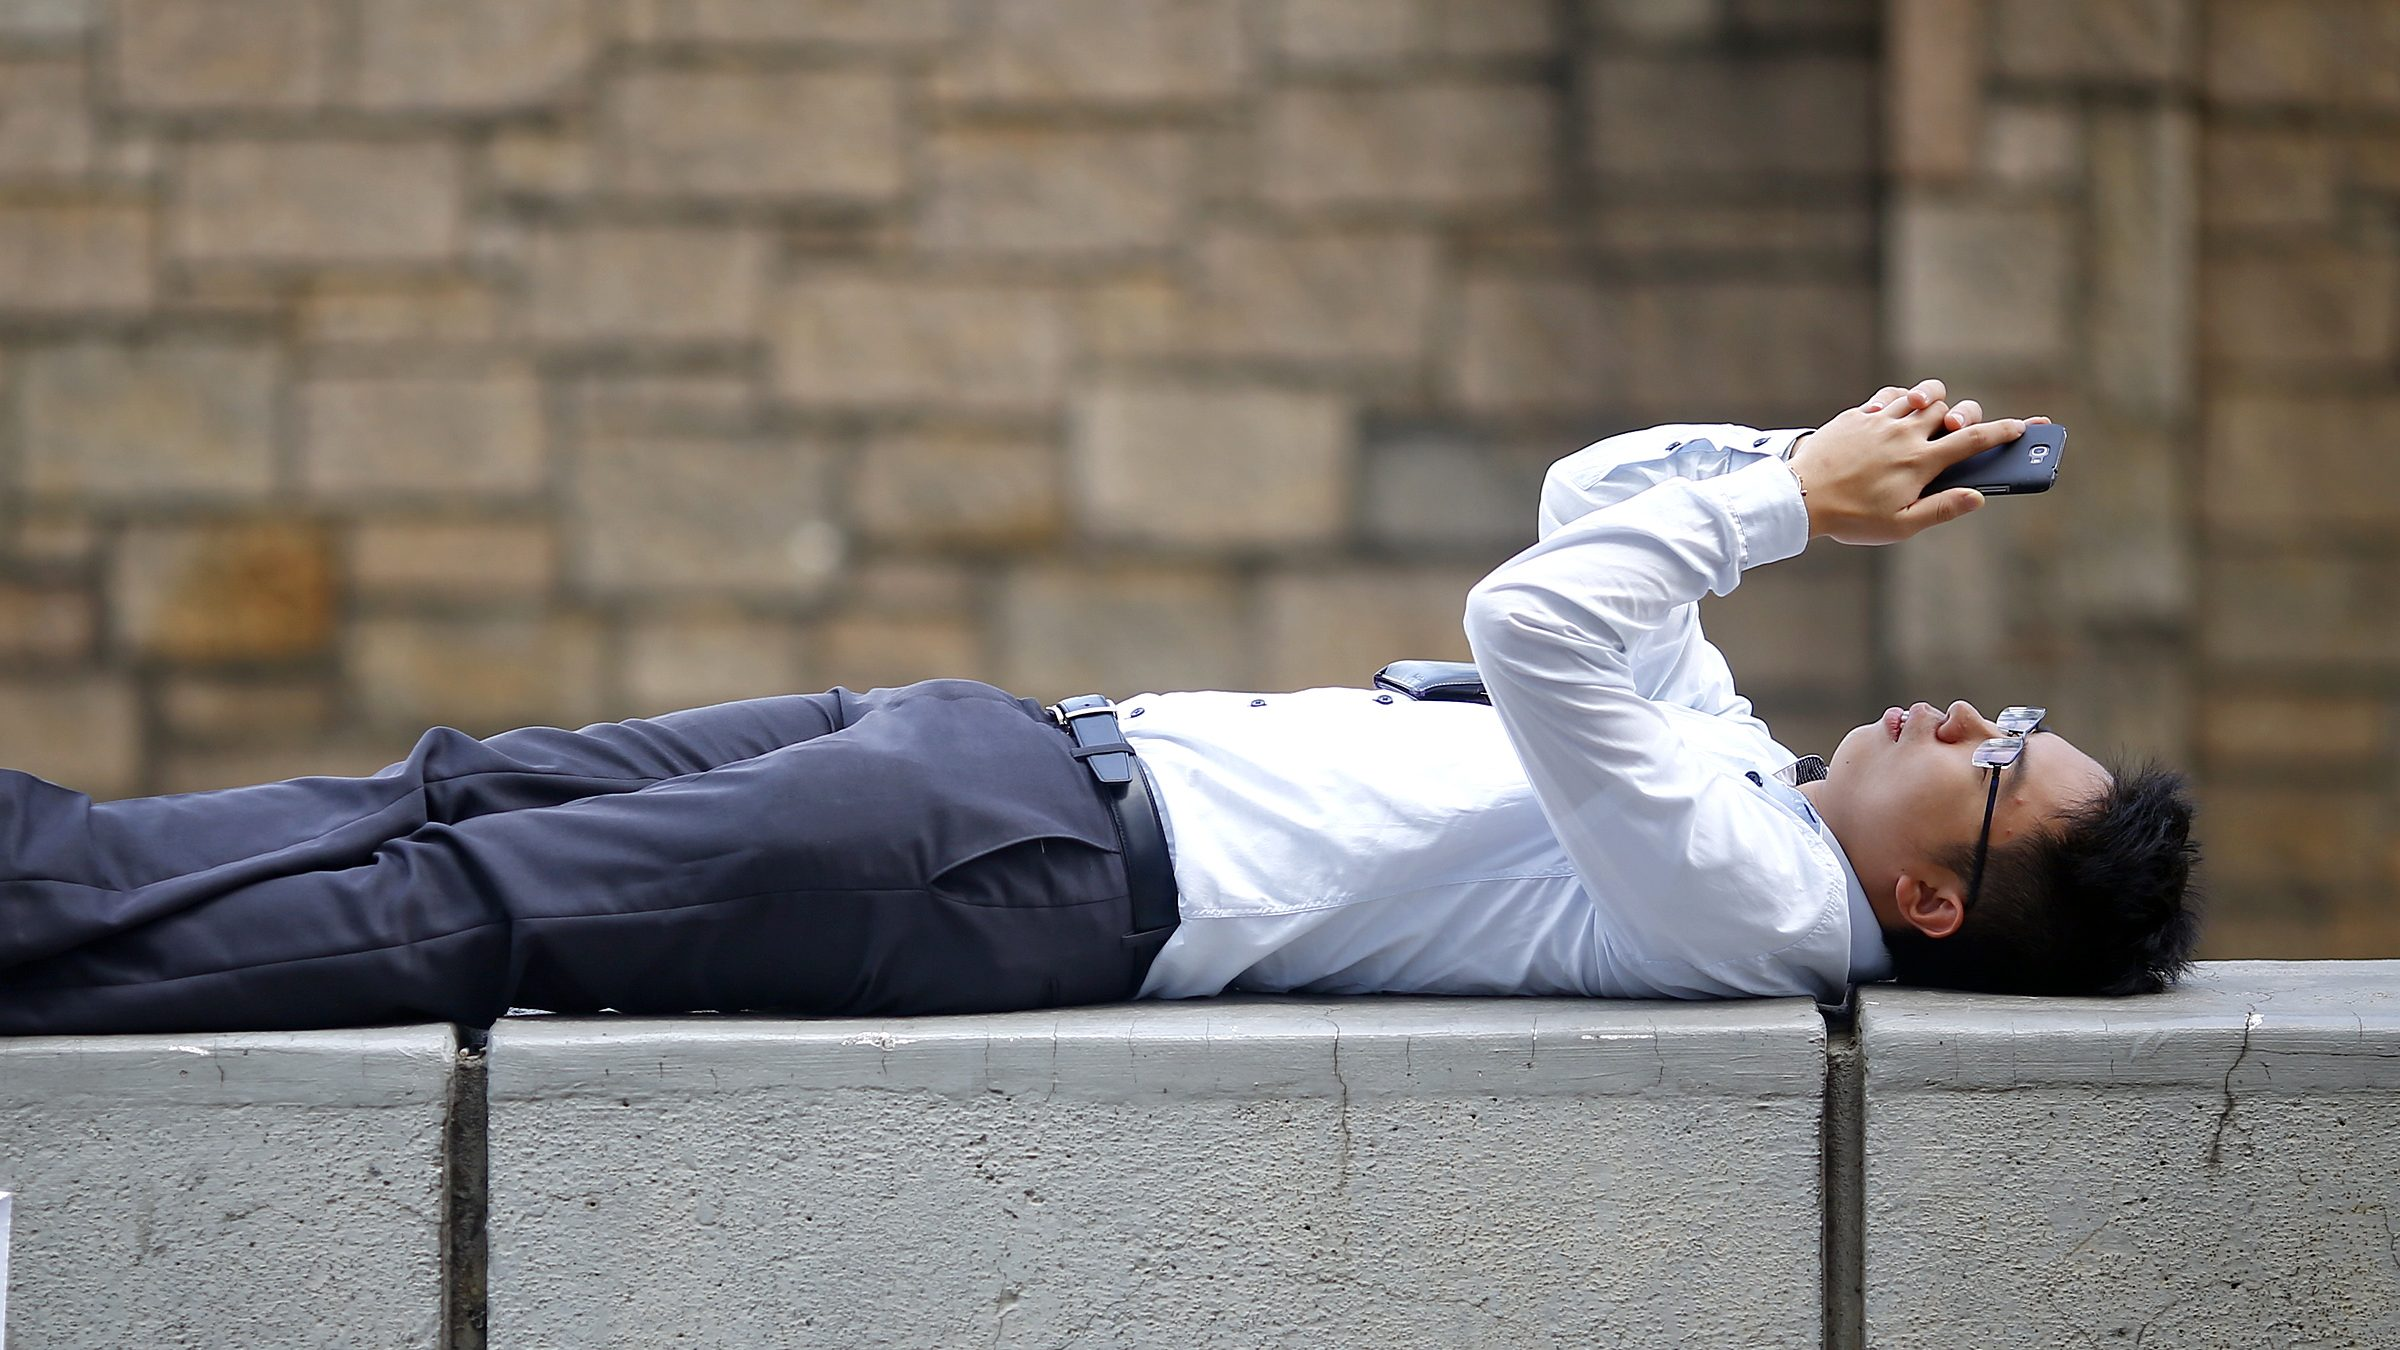 A businessman relaxes on a barrier between closed roads in the part of Hong Kong's financial central district pro-democracy protesters are occupying October 31, 2014. The former British colony of Hong Kong, which returned to Chinese rule in 1997, has witnessed a month of protests calling on the Beijing-backed government to keep its promise of introducing universal suffrage. The protests have for the most part been peaceful, with occasional clashes between the student-led protesters and Beijing supporters seeking to move them from the streets.